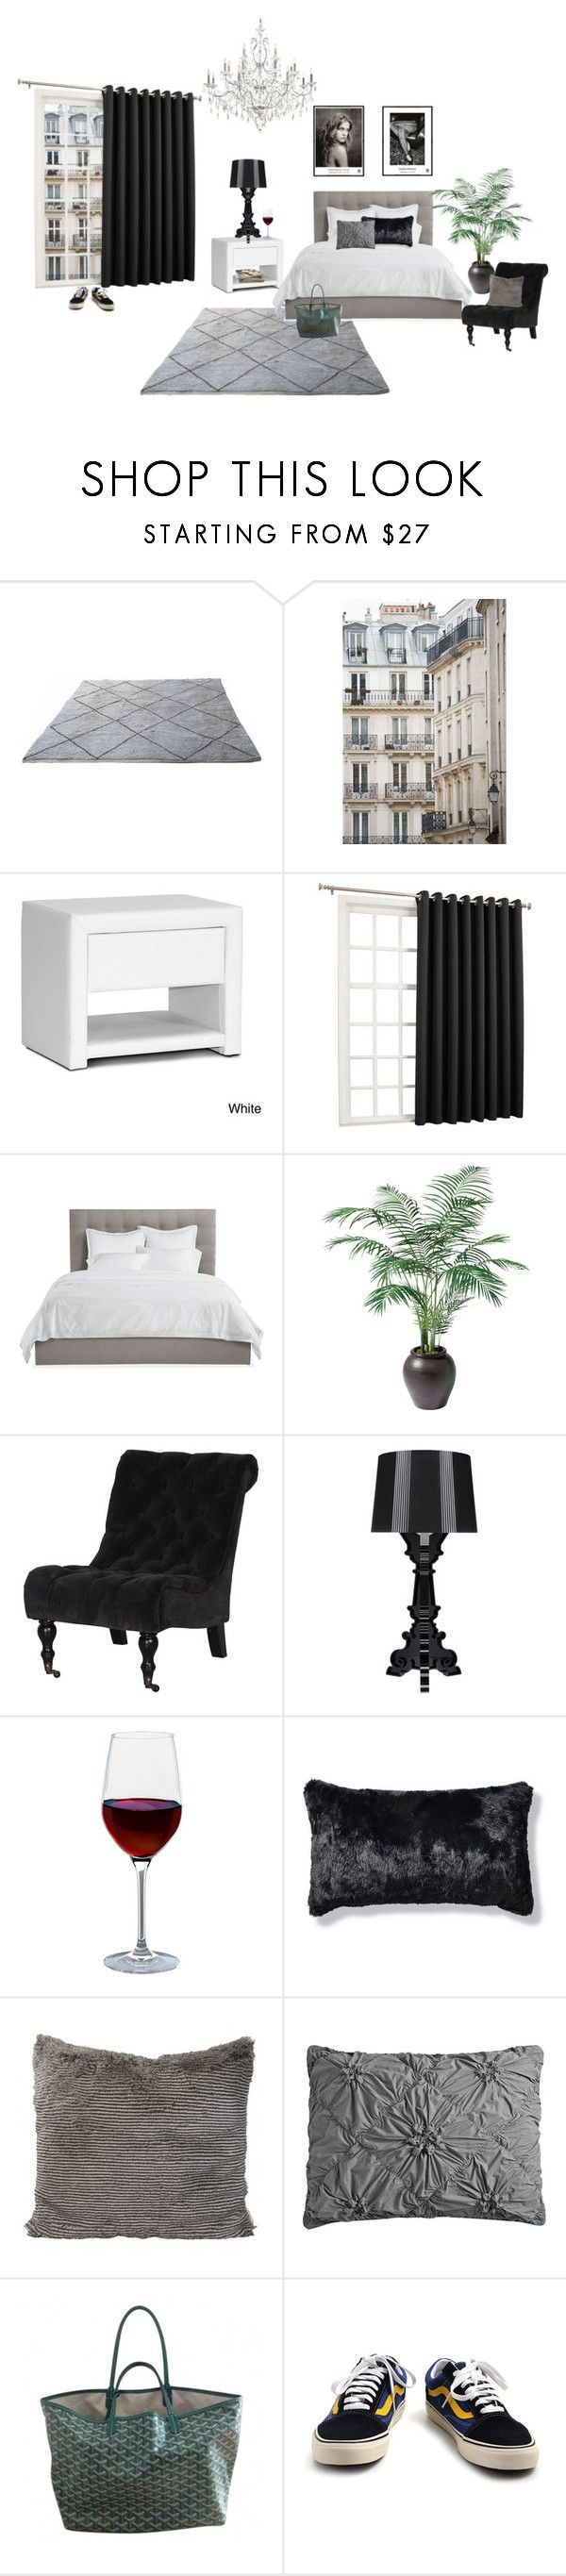 """Untitled #246"" by fashiondisguise on Polyvore featuring interior, interiors, interior design, home, home decor, interior decorating, Haussmann, Baxton Studio, Sun Zero and Avery"